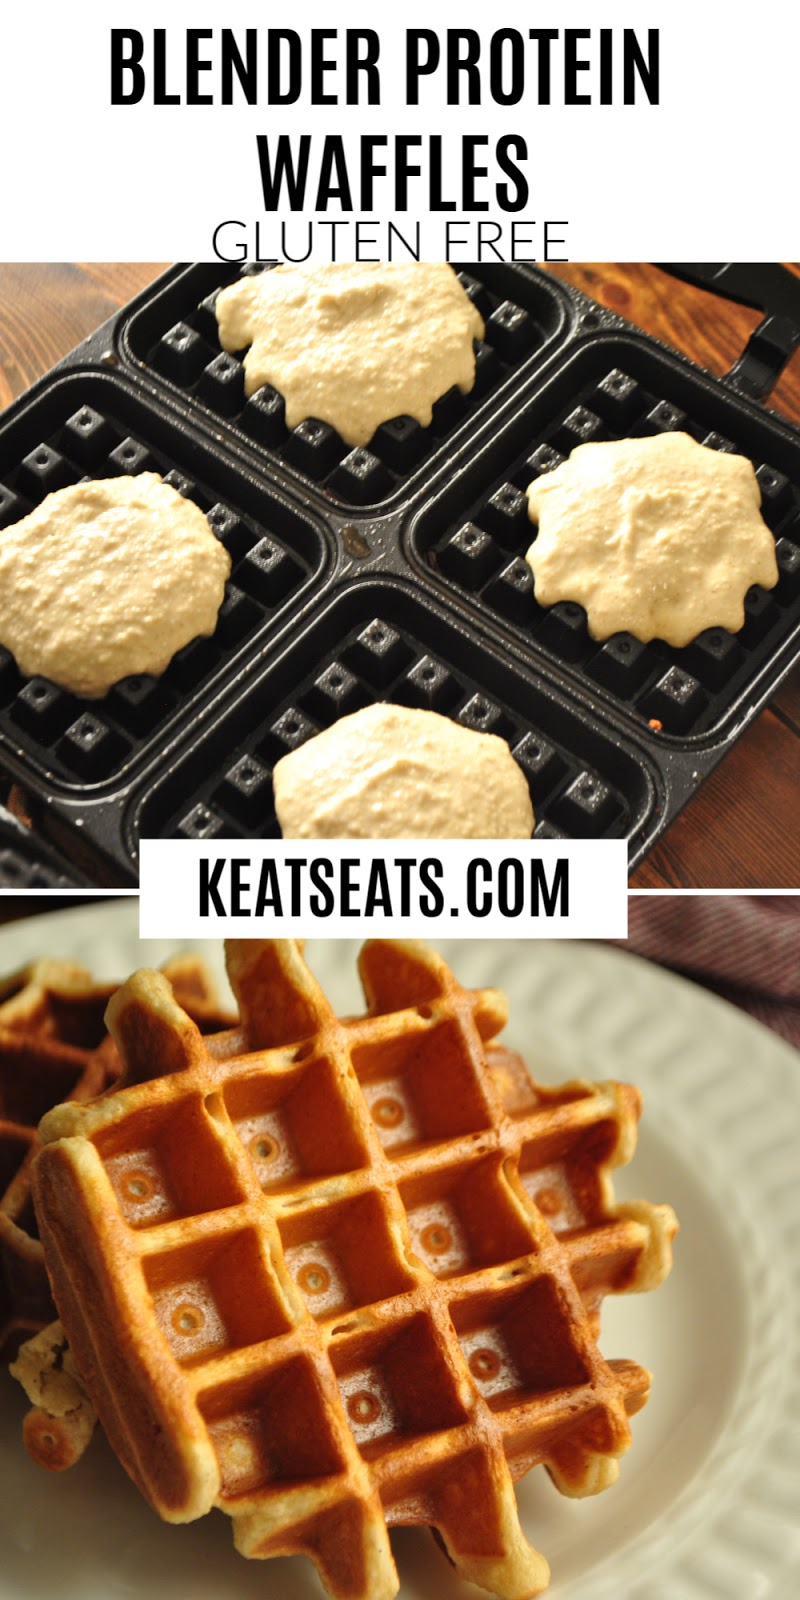 Protein packed, low fat, gluten free blender waffles that are so quick and easy to make!